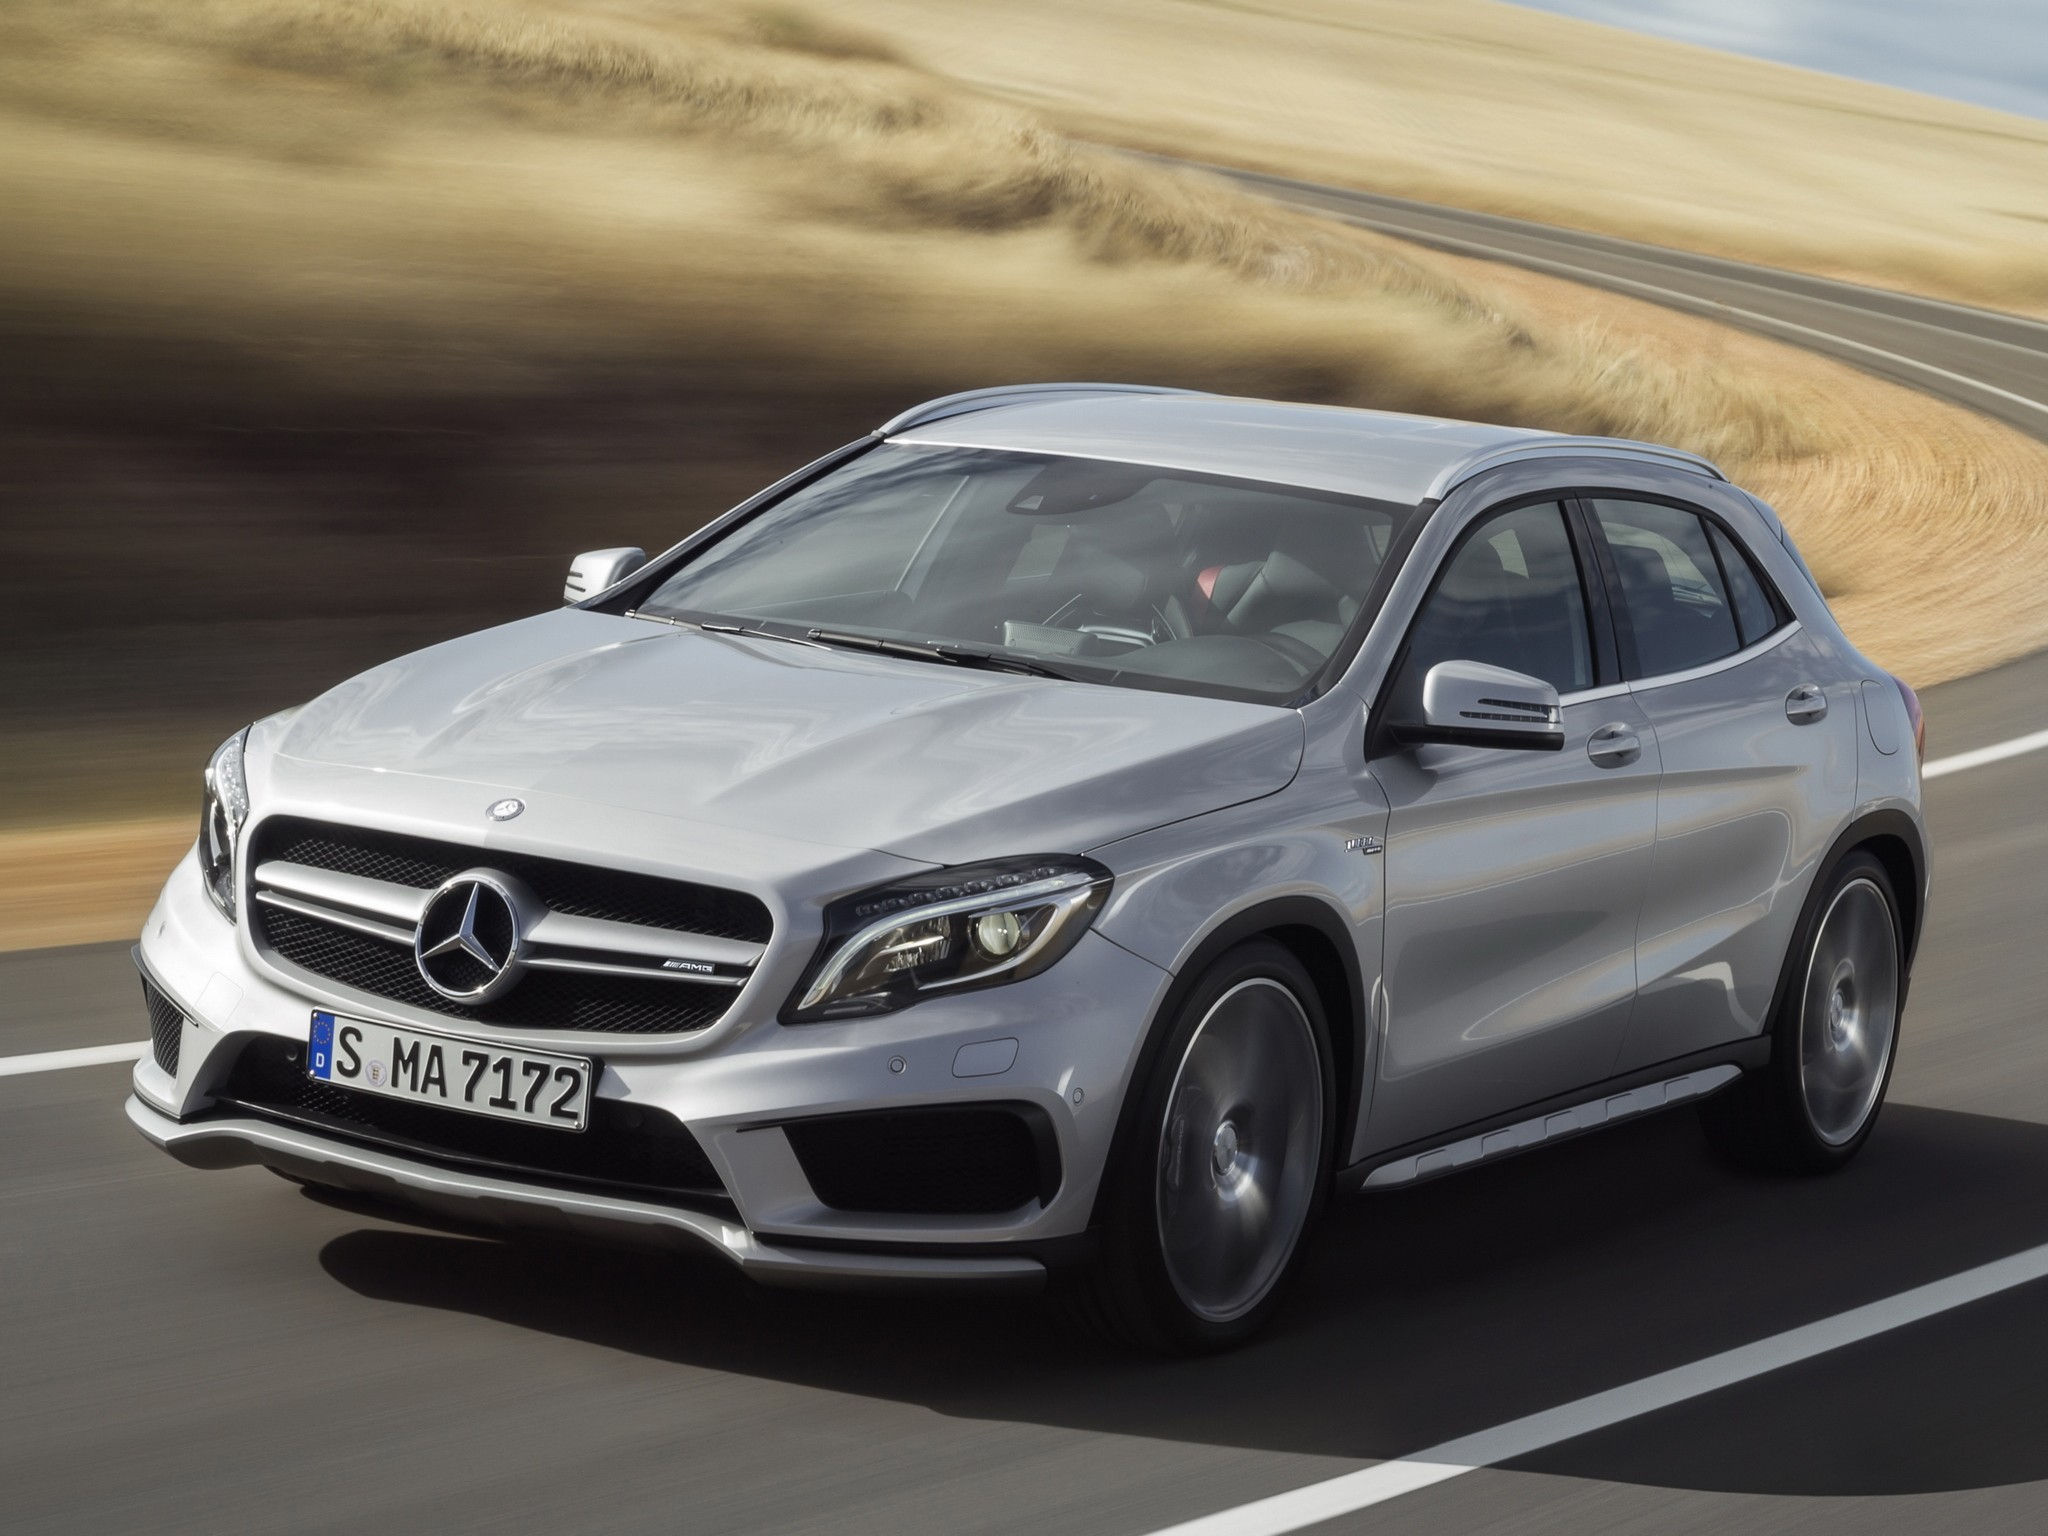 Mercedes benz gla 45 amg x156 specs 2014 2015 2016 for Mercedes benz car picture gallery